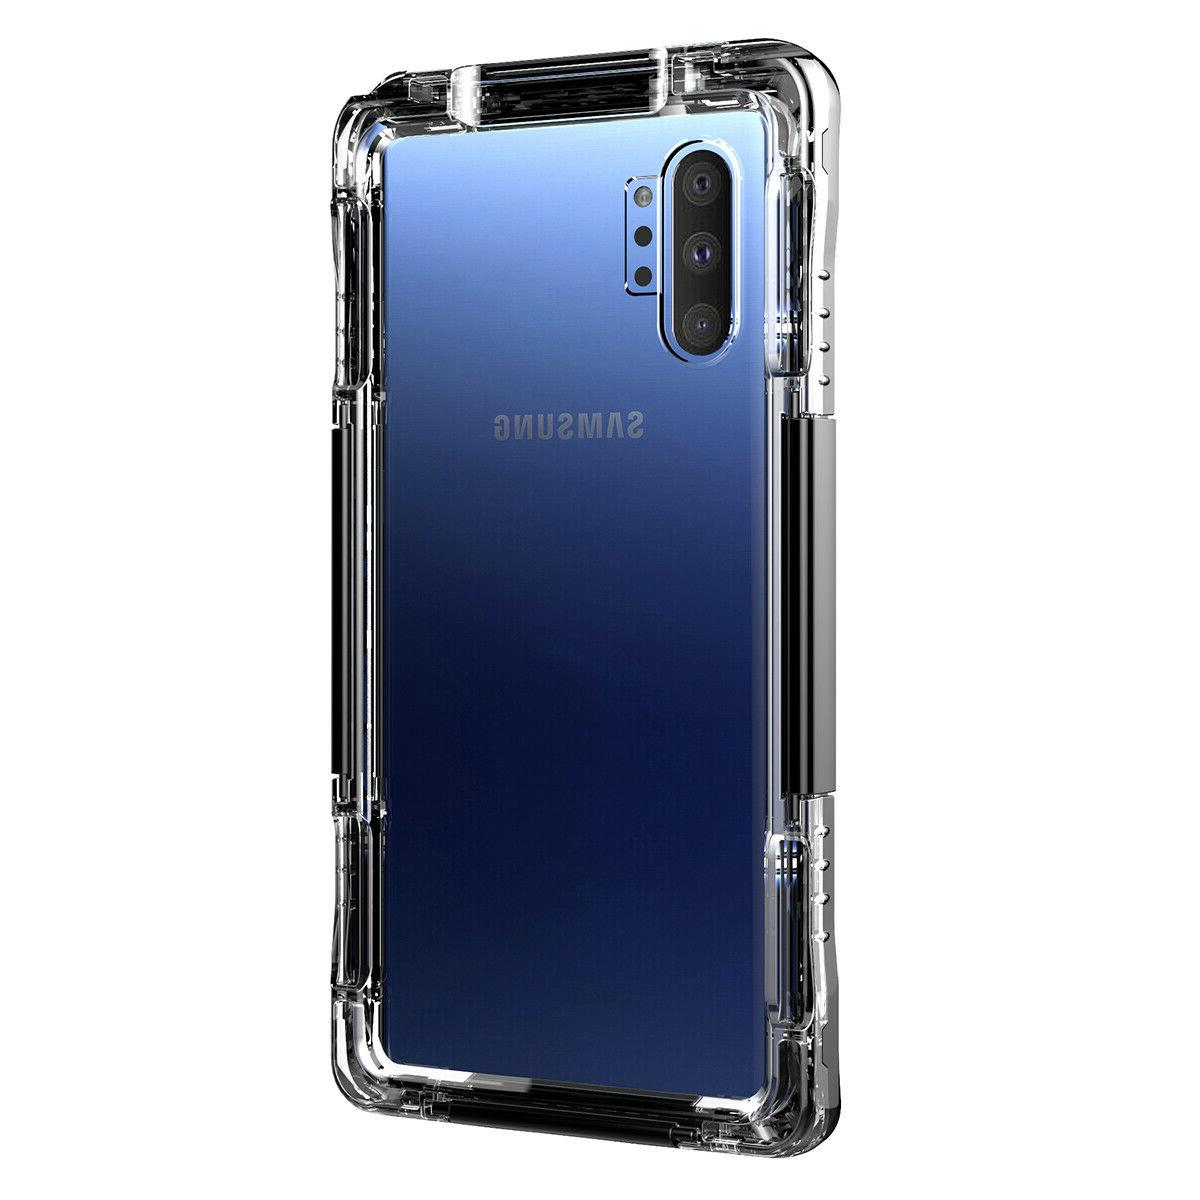 Waterproof Shockproof For SamSung Note10+ Plus W/Strap